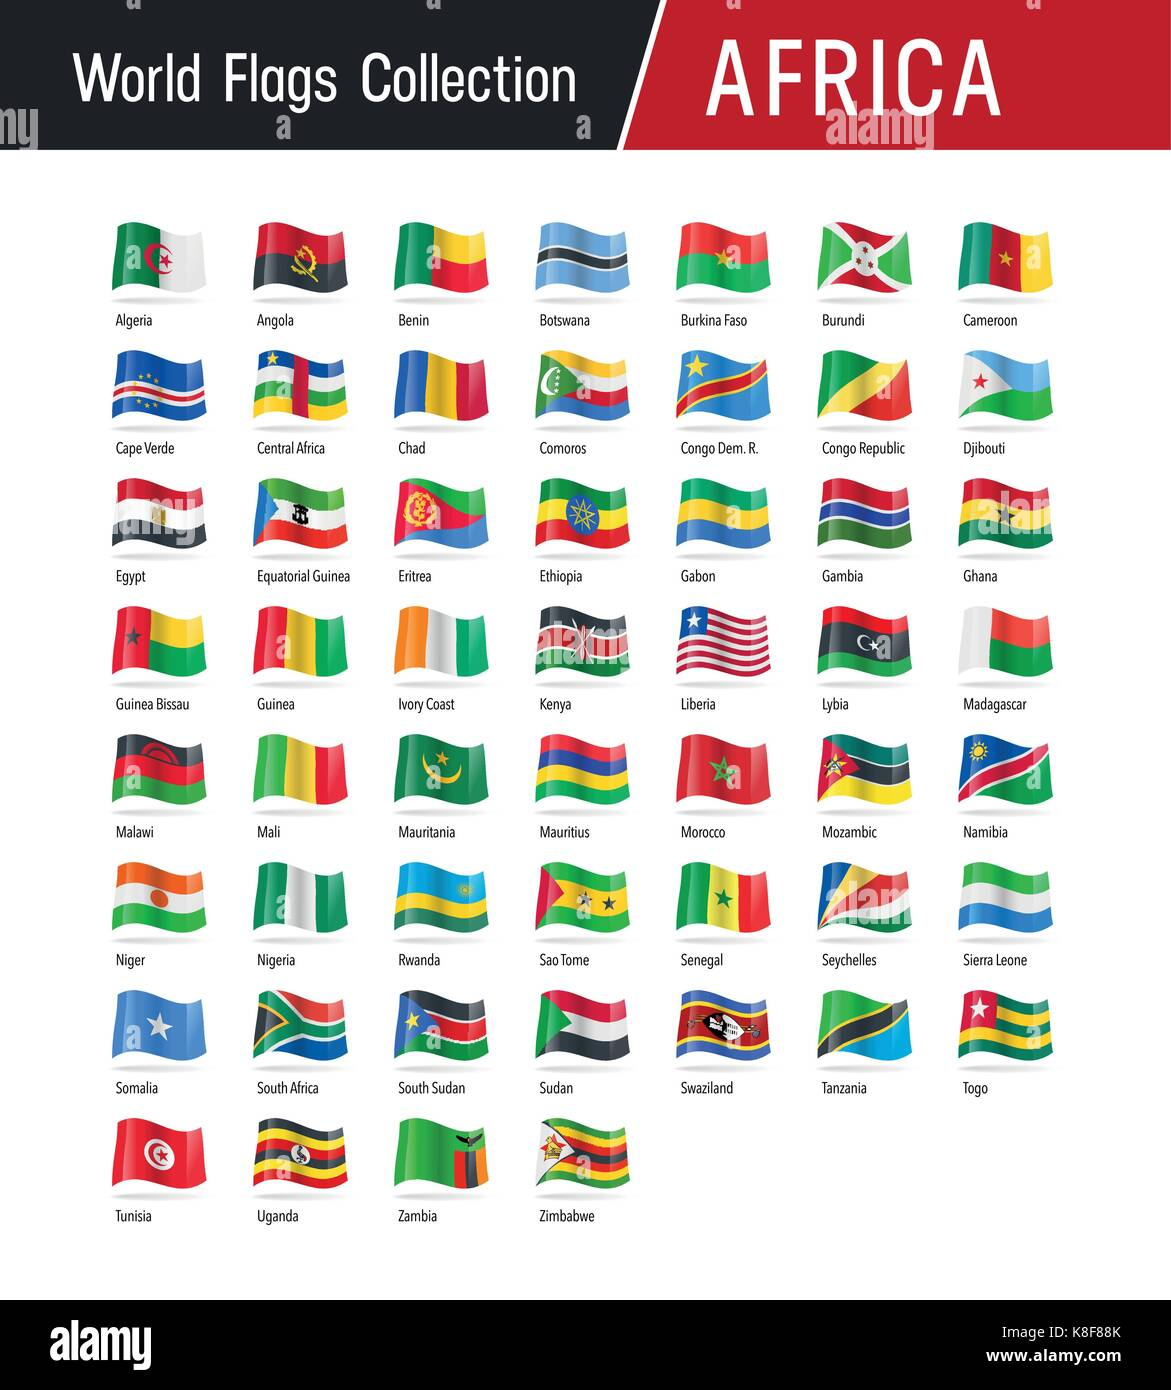 Flags of Africa, waving in the wind - Vector world flags collection - Stock Image